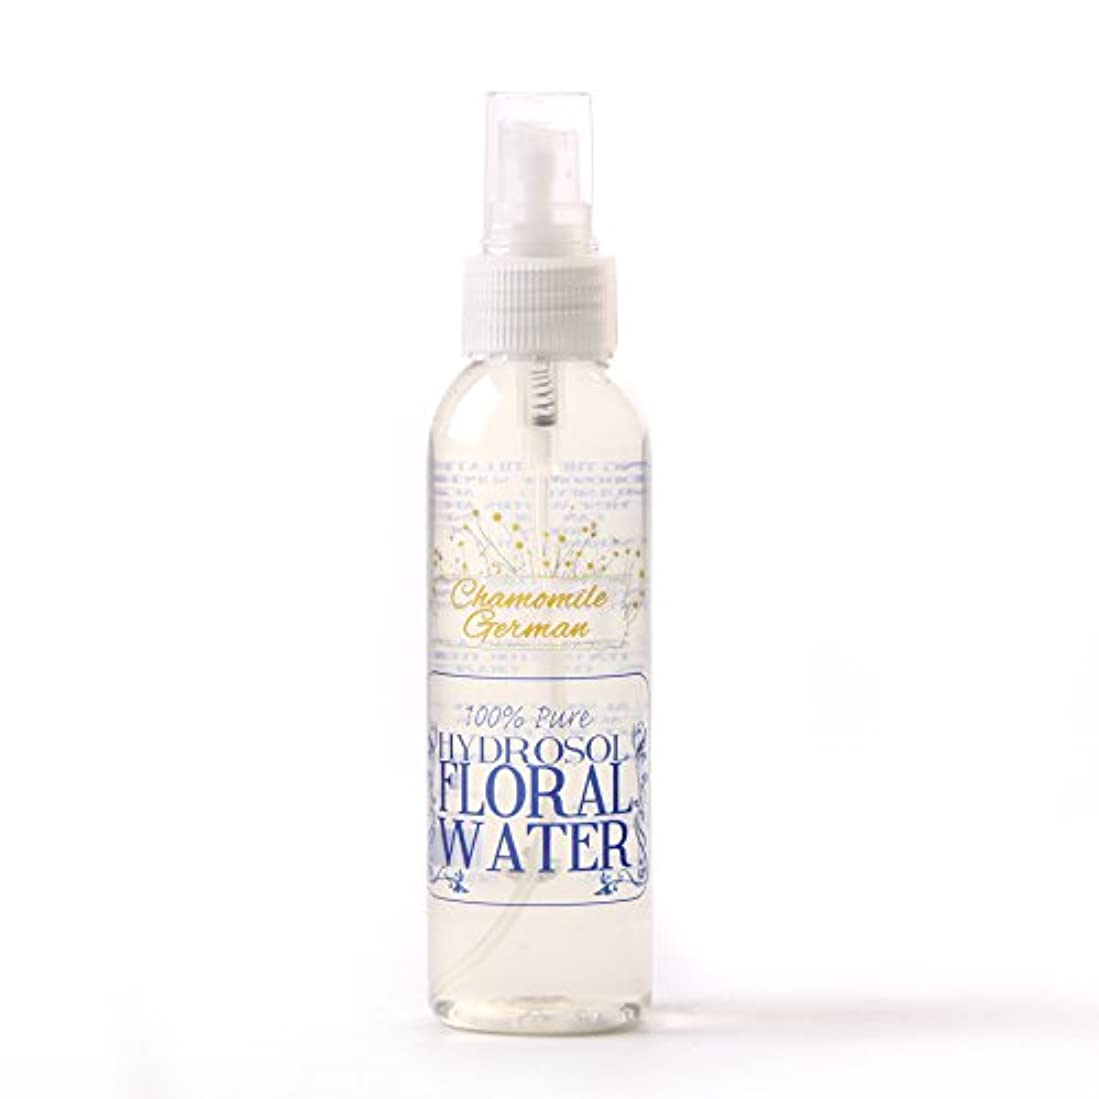 German Chamomile Hydrosol Floral Water With Spray Cap - 125ml